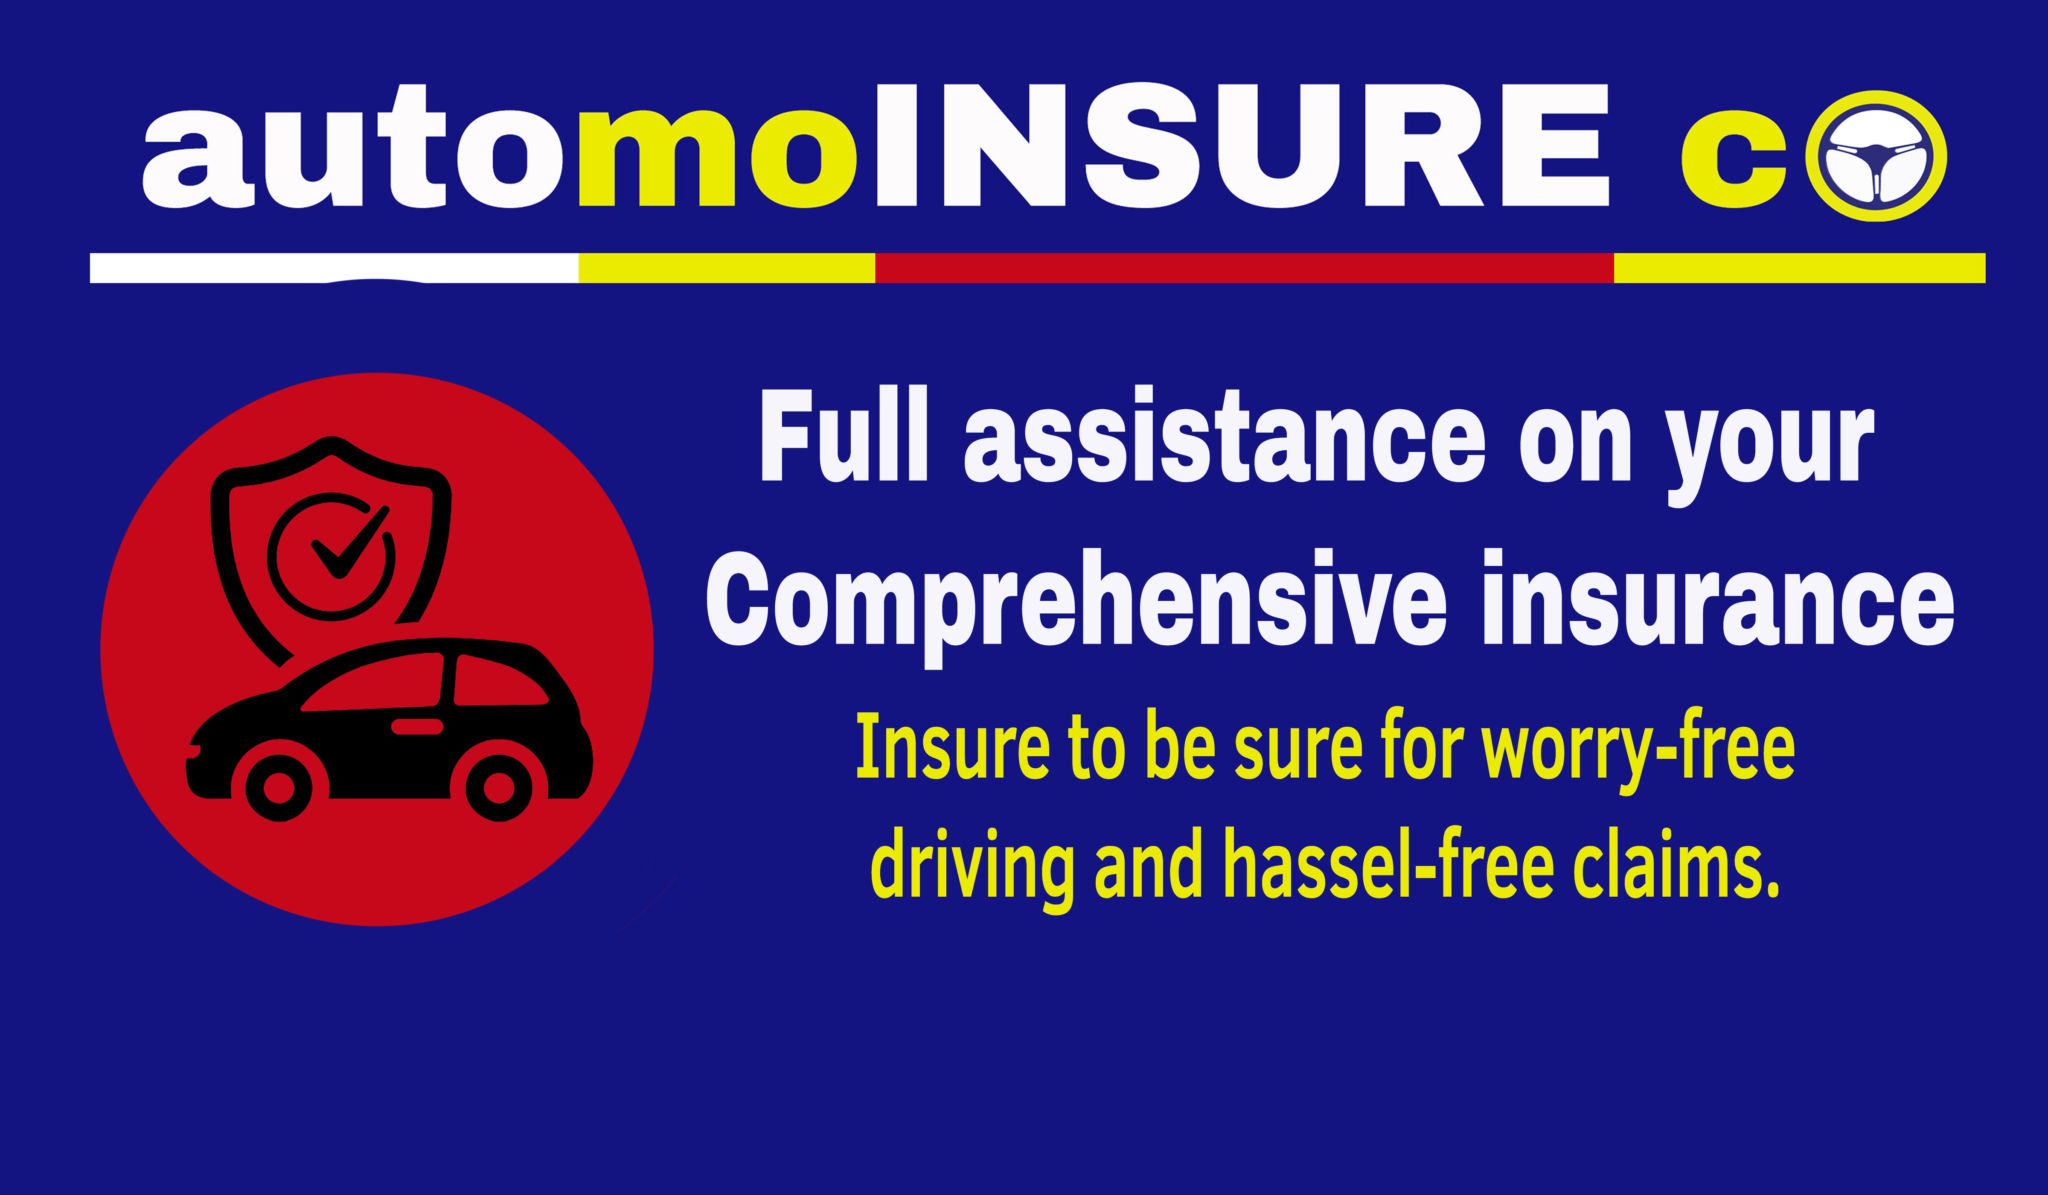 Car insurance for your car